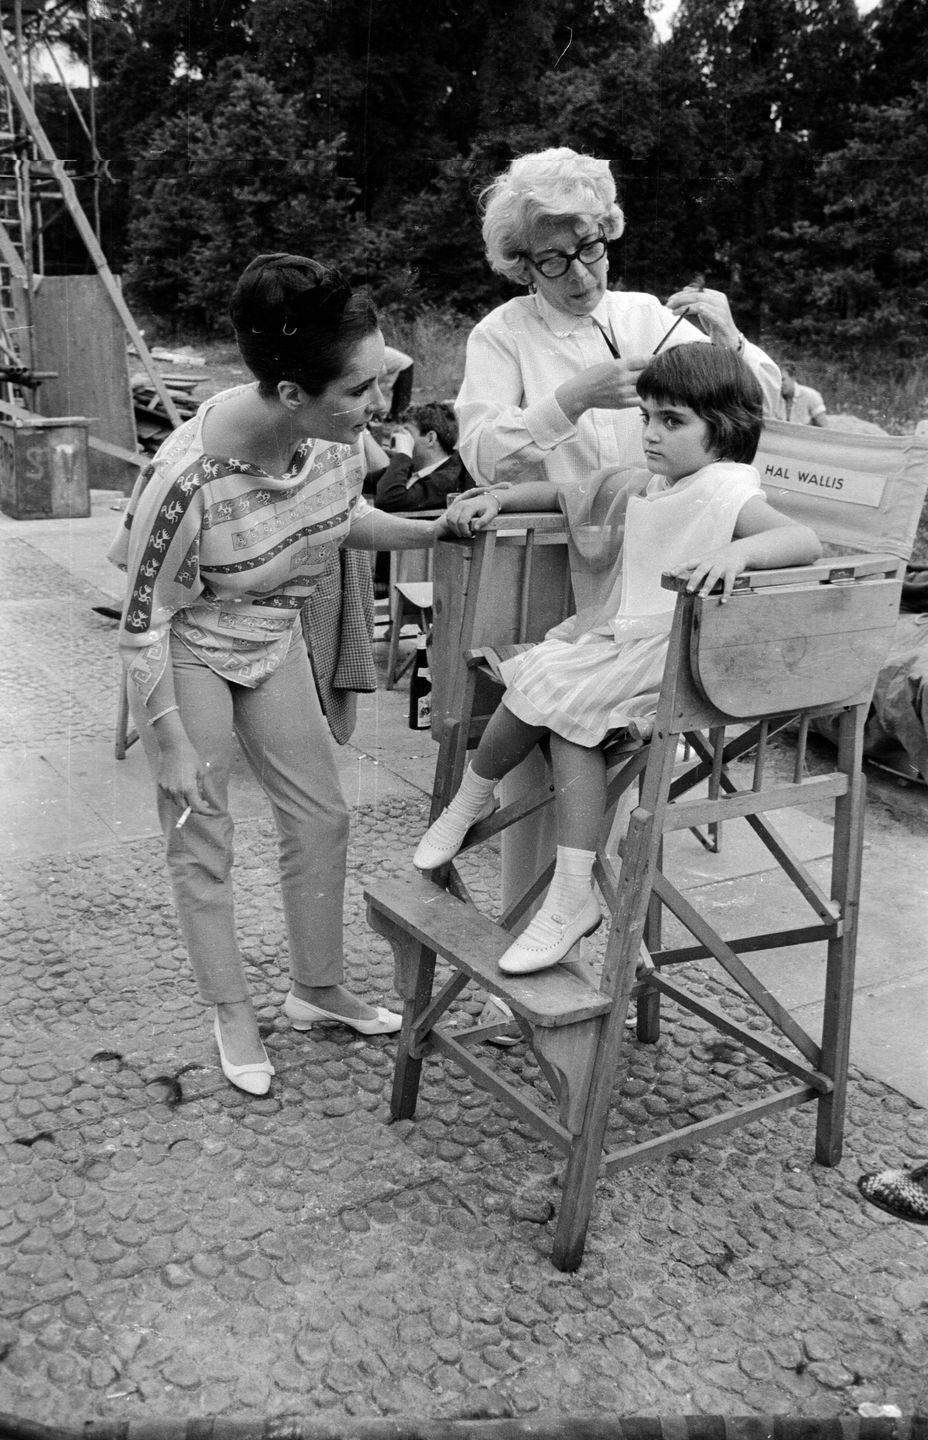 <p>While on the set of her mother Elizabeth Taylor's film <em>Becket, </em>Liza Todd gets her hair cut and styled by the film's hairdresser. We were getting our hair cut by our mothers over the bathroom sink at that age ...</p>